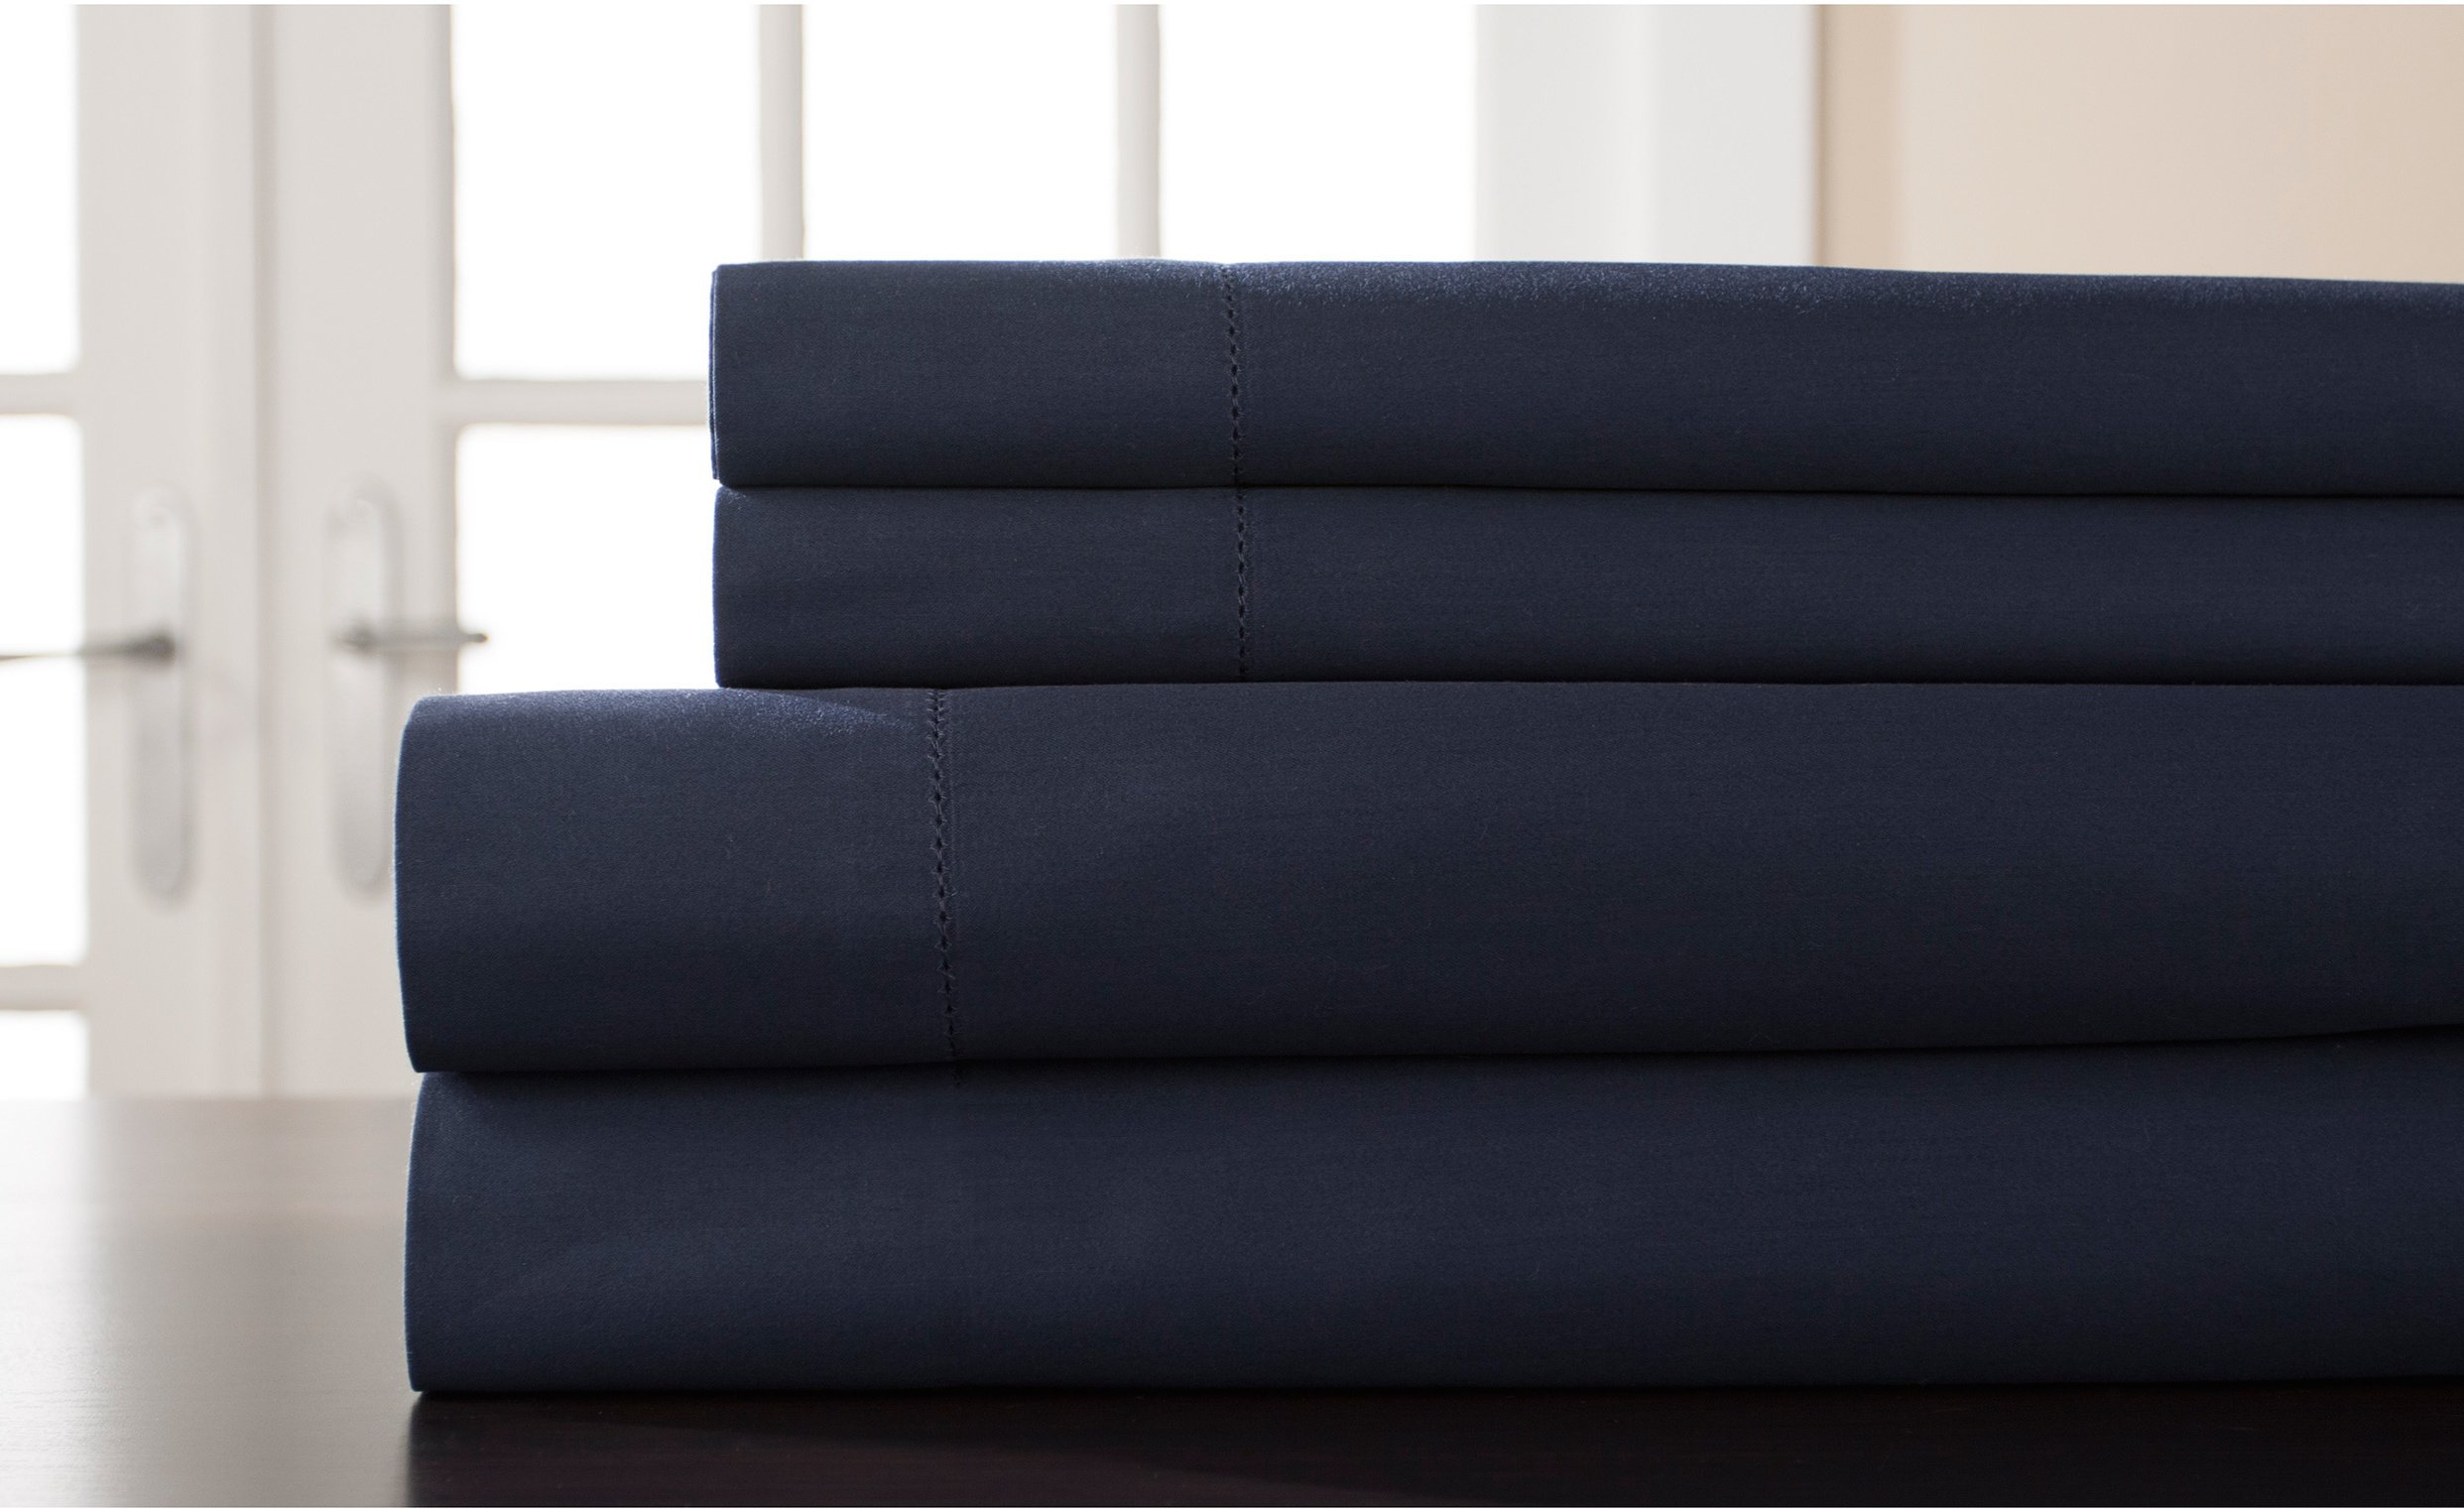 PH 4 Piece King Navy Blue Weave Sheet Set, Classic Shabby Chic & French Country Style, Solid Colour Pattern, Cotton & Sateen Material, Fully Elasticised Fitted Sheet, Machine Wash - Dark Blue